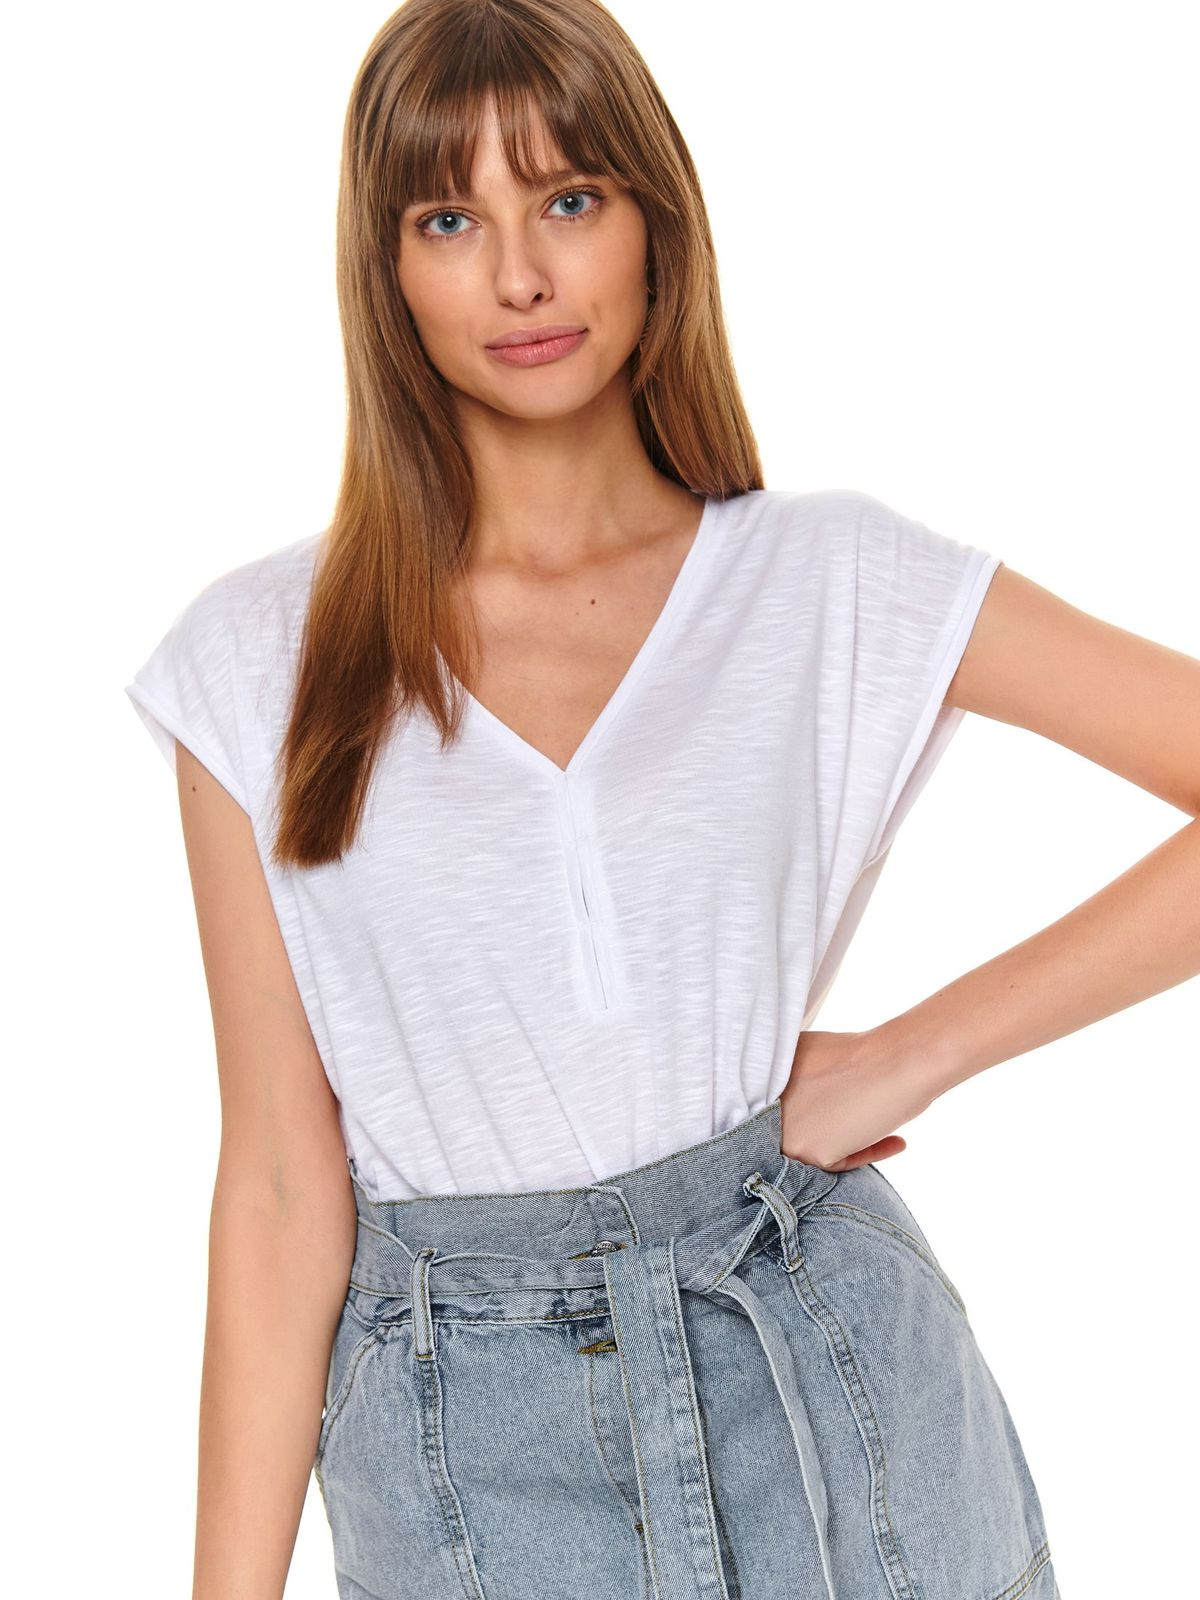 Bluza dama Top Secret alba casual cu croi larg cu maneci scurte si decolteu in v